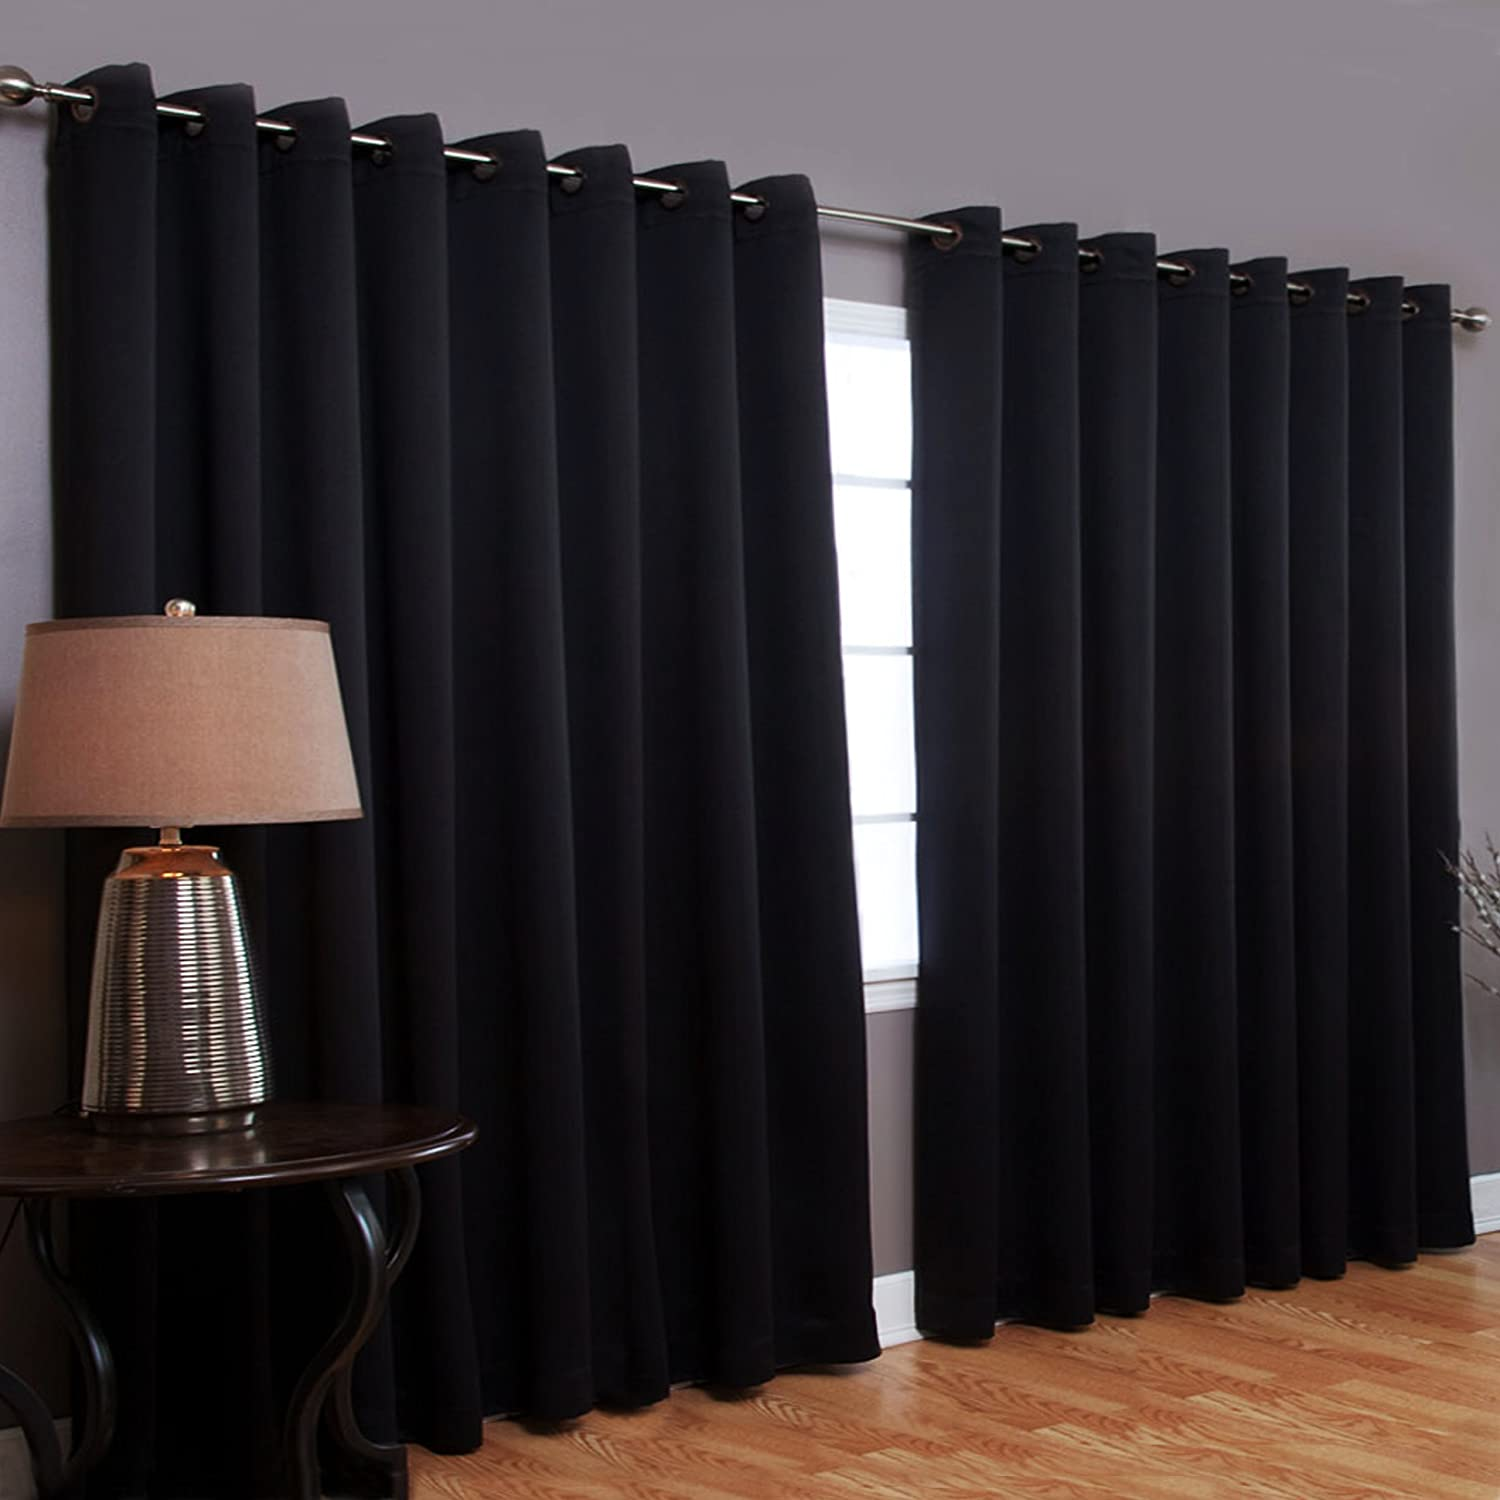 Best Fabric For Outdoor Curtains Solar Blocking Curtains